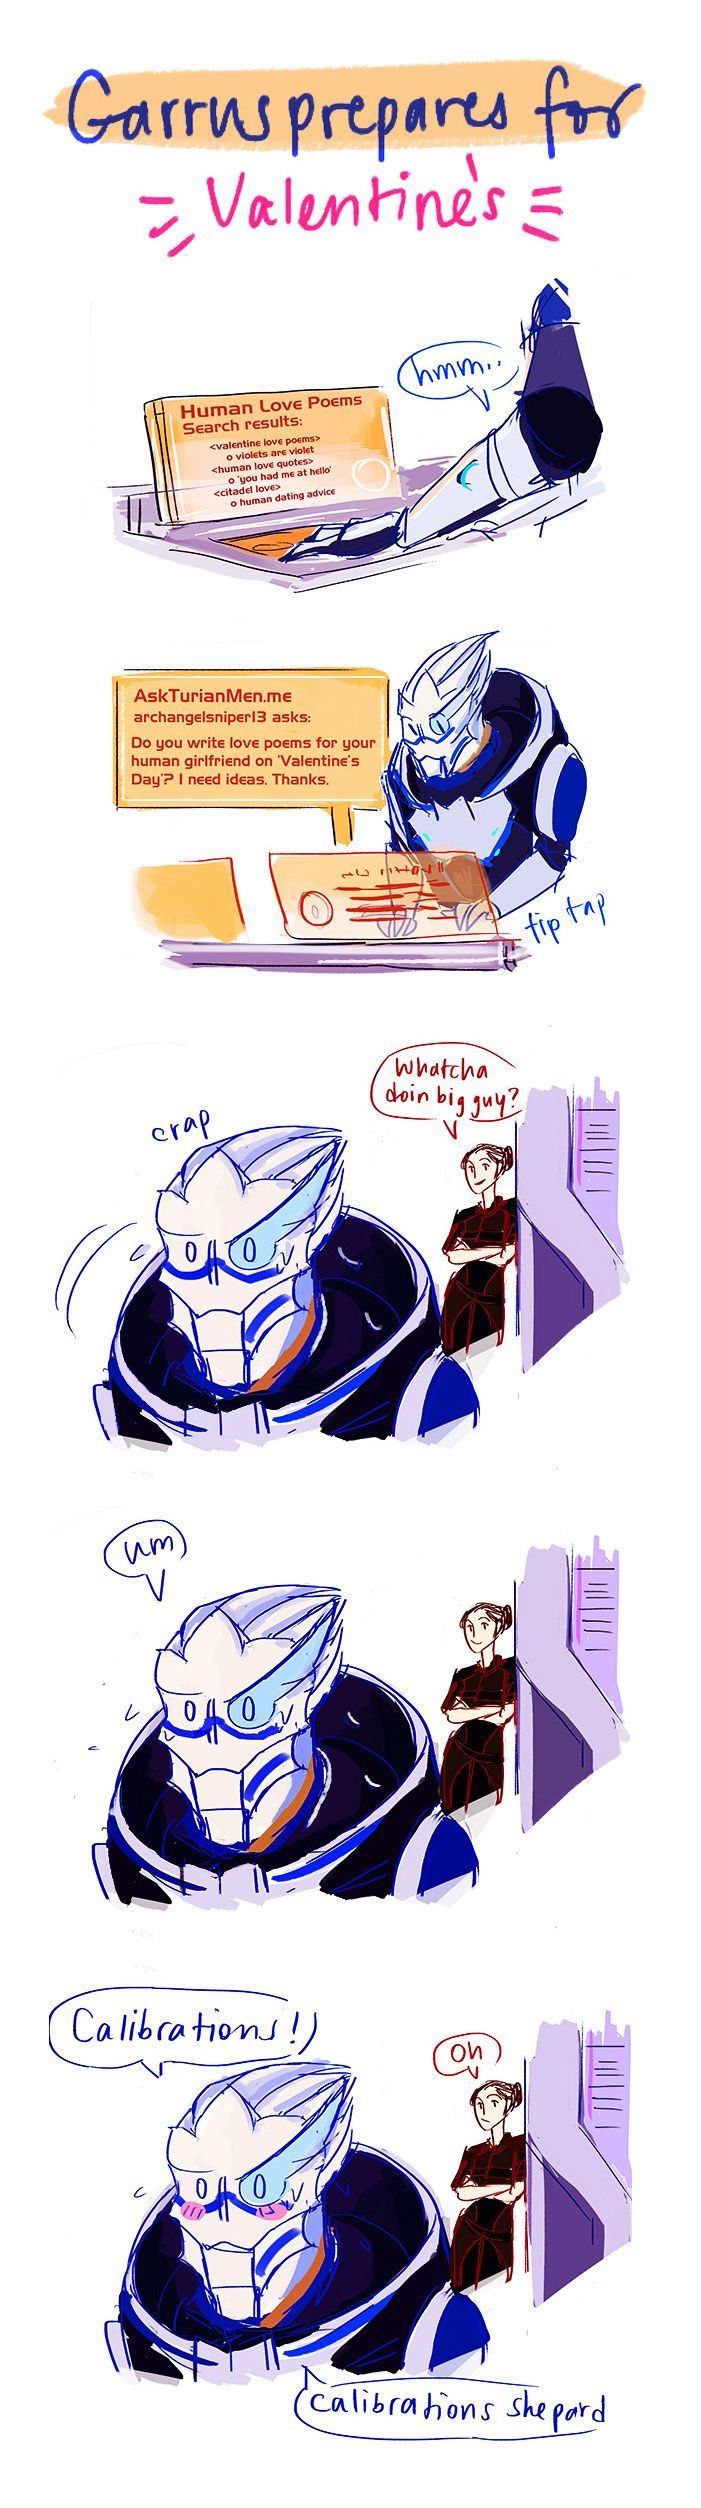 Garrus' All-Purpose Excuse [Valentine's Special] by reubelyn.deviantart.com on @deviantART